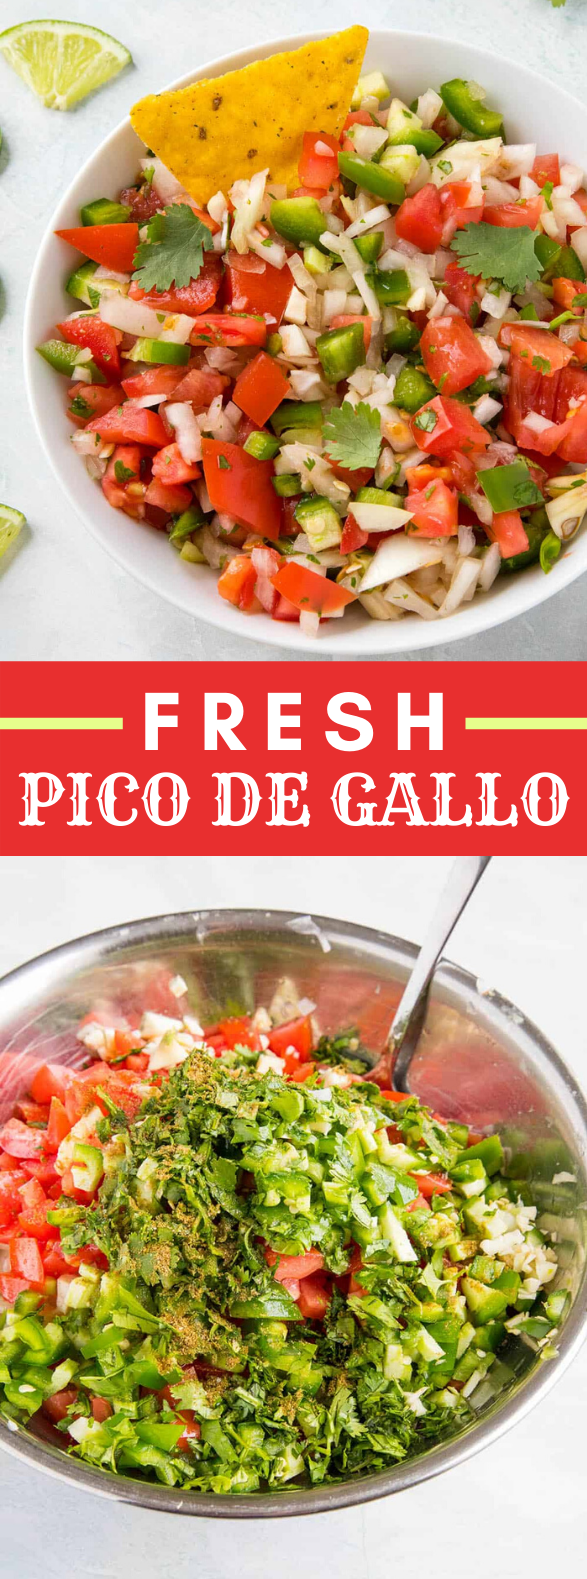 FRESH PICO DE GALLO RECIPE #vegetarian #vegan